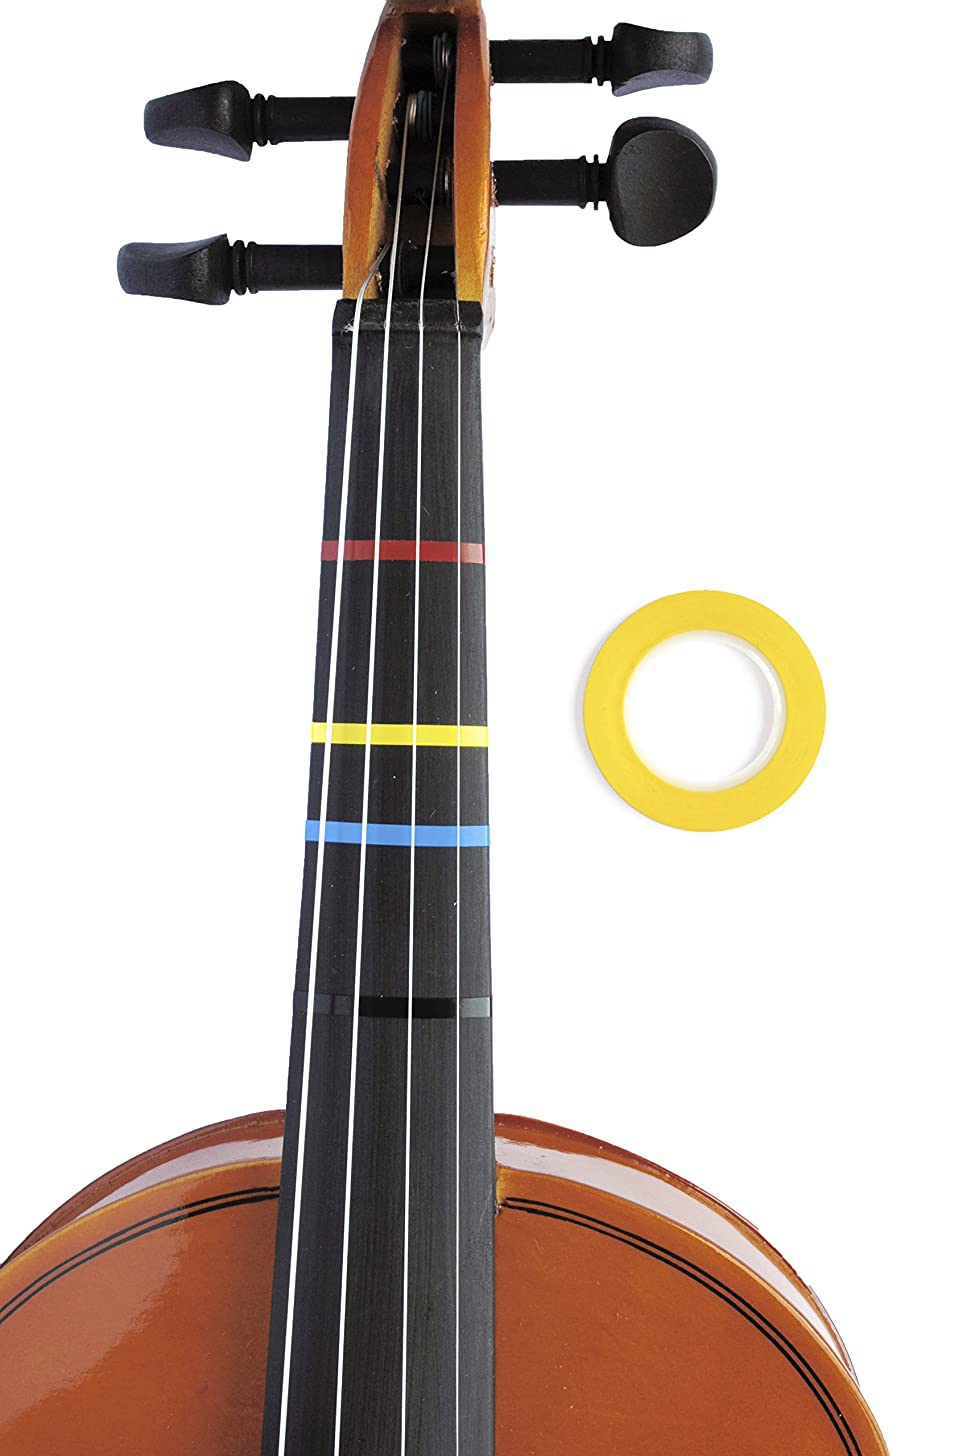 Jumbo YELLOW Color Violin Fingering Tape for Fretboard Note Positions